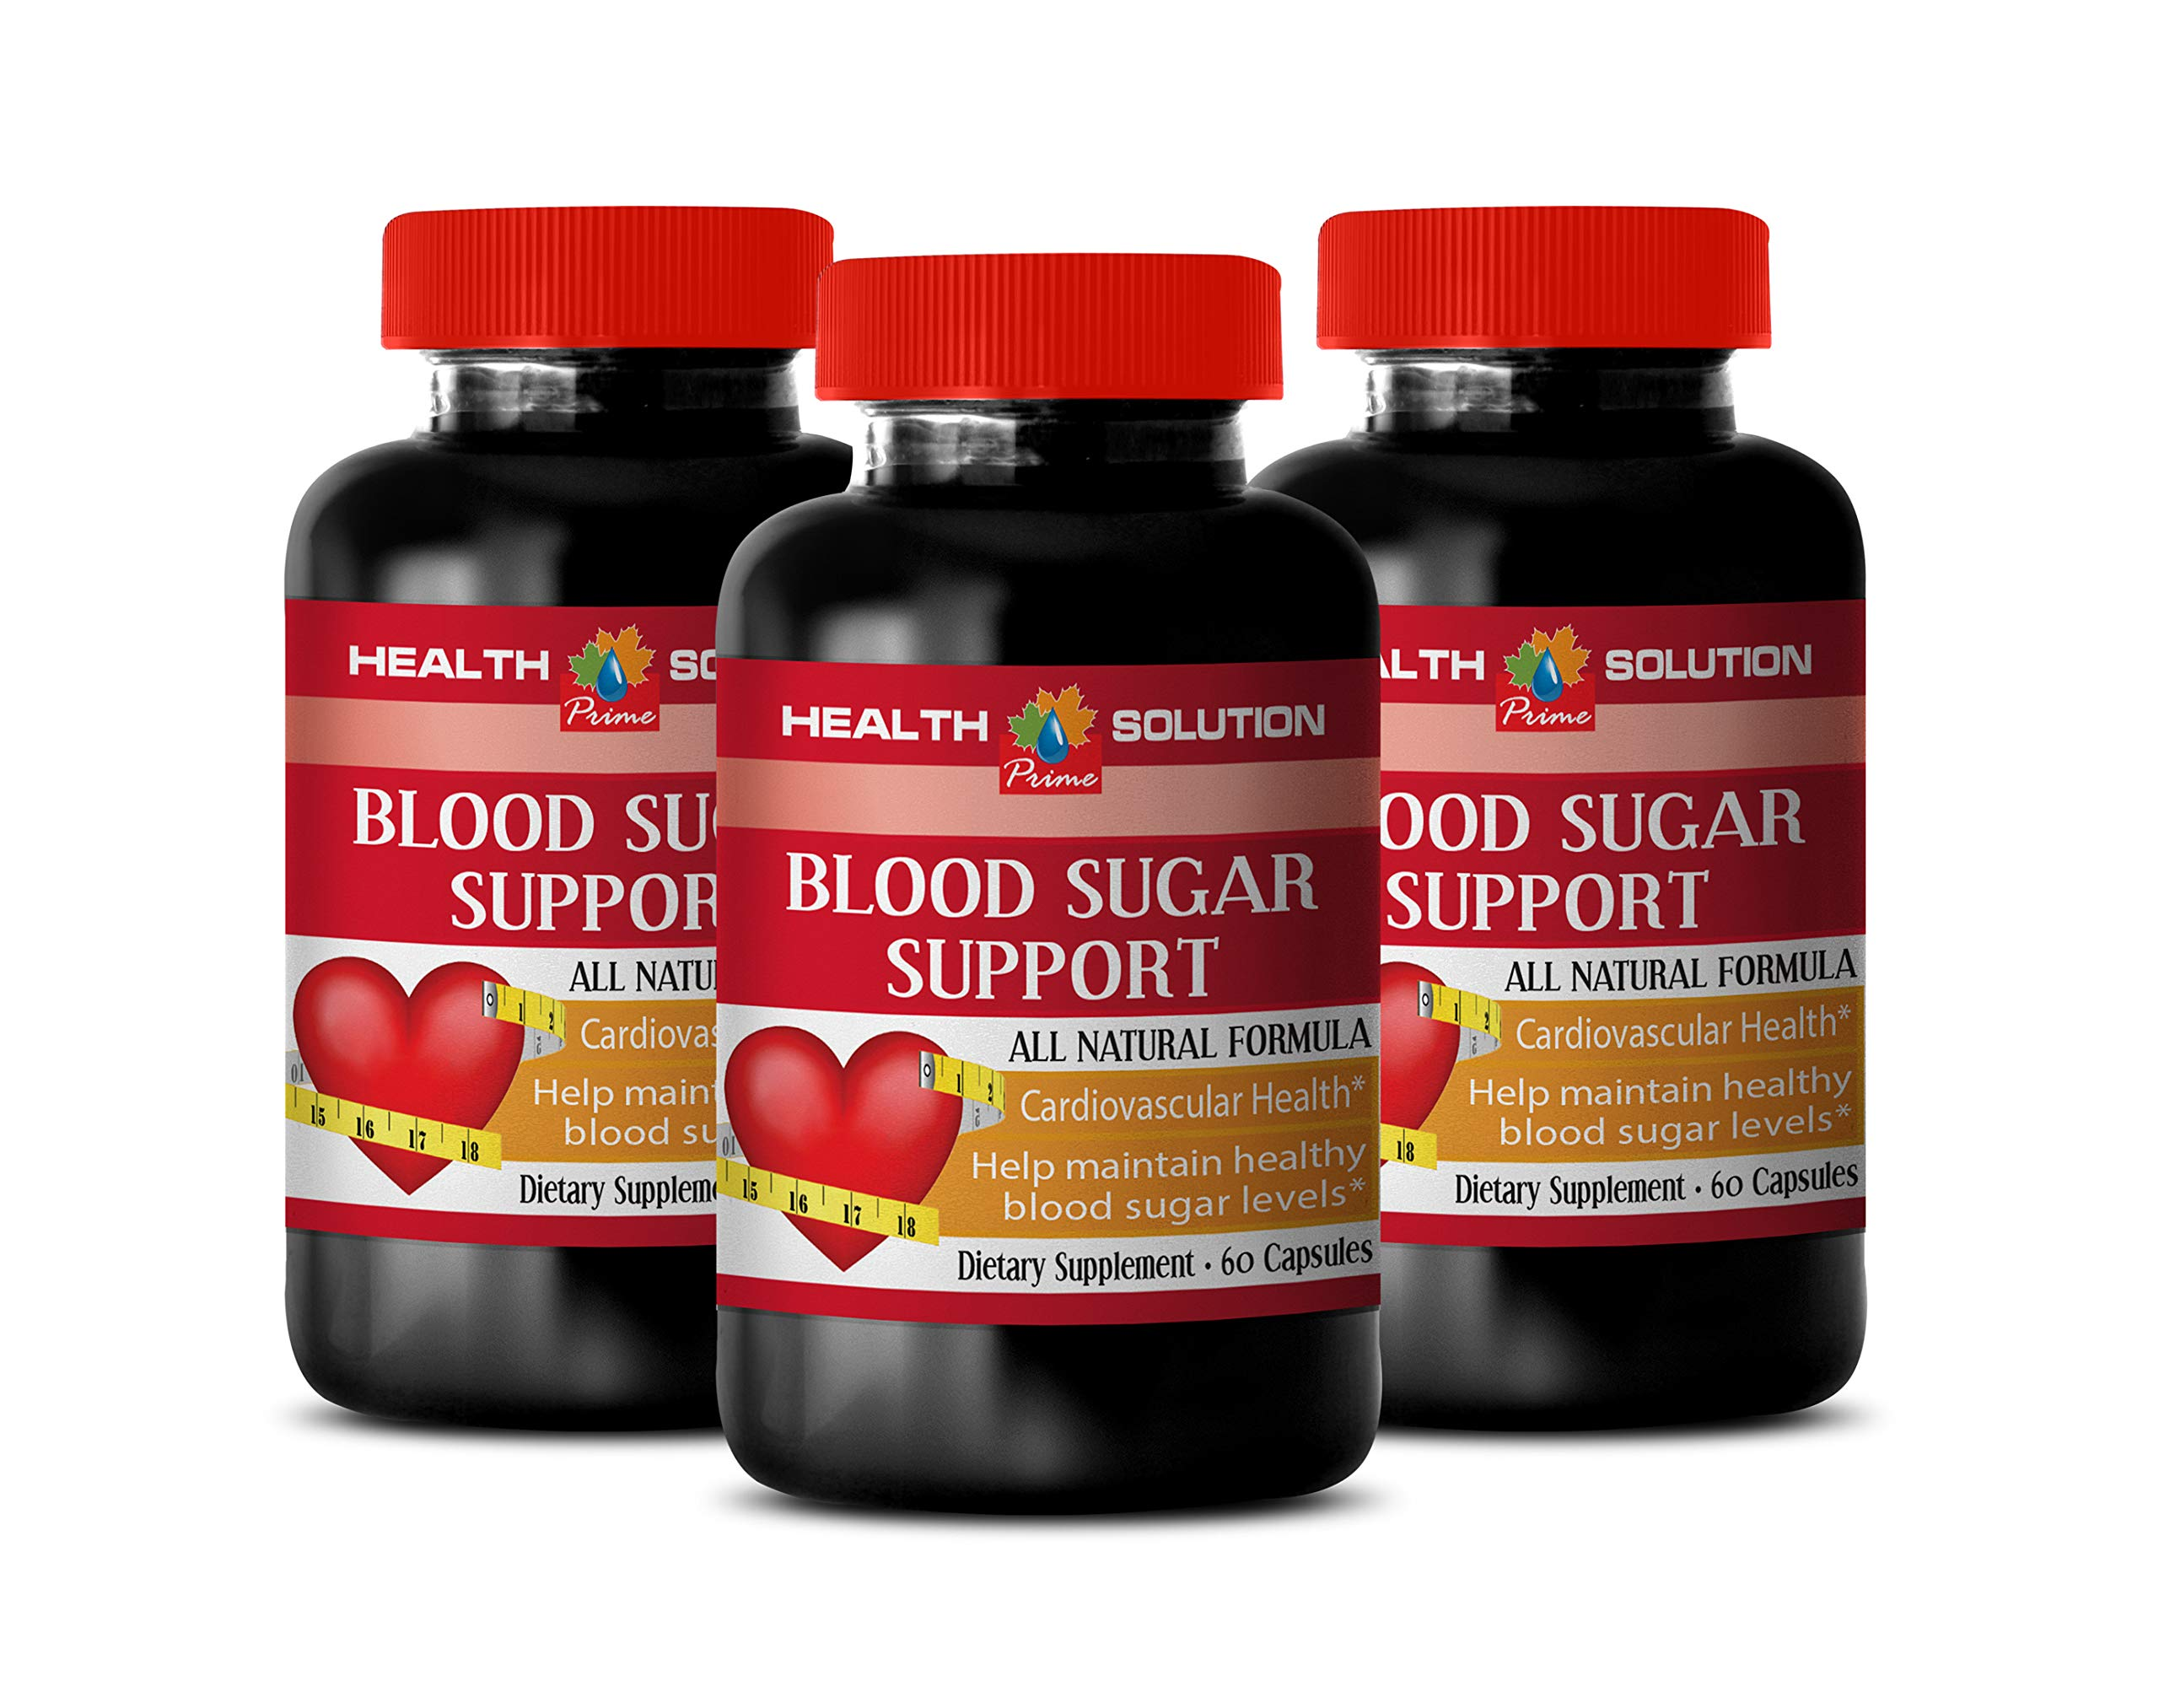 Blood Flow Increasing Supplements - Blood Sugar Support - All Natural Formula - Cardiovascular Health - Bitter Melon Extract Supplement - 3 Bottles 180 Capsules by Health Solution Prime